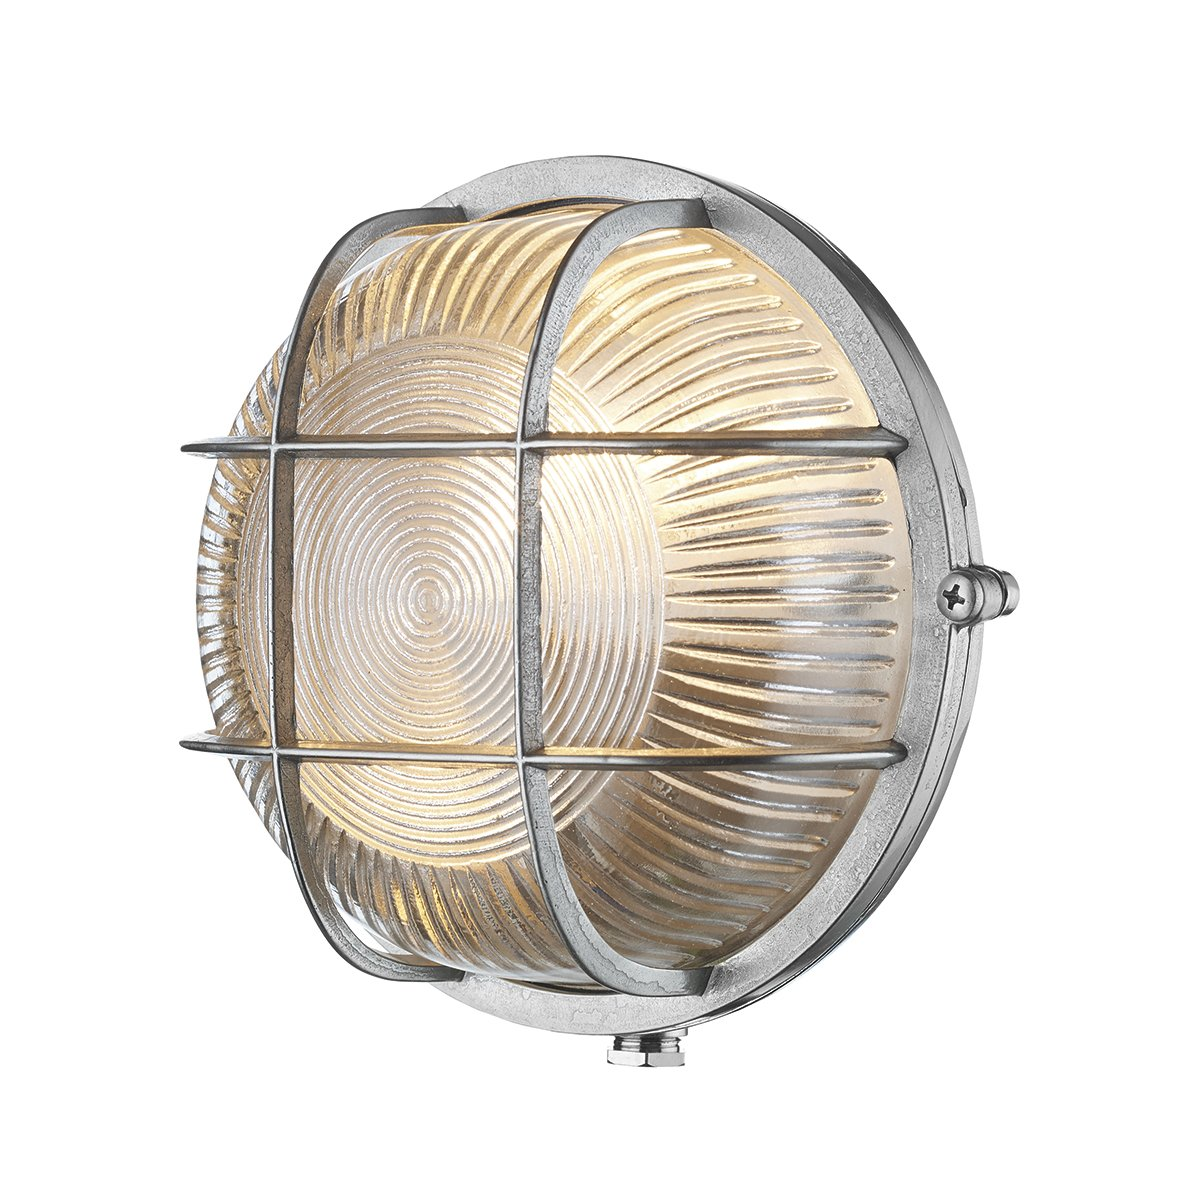 David Hunt Lighting ADM5038 Admiral 1 Light Round Wall Light Nickel